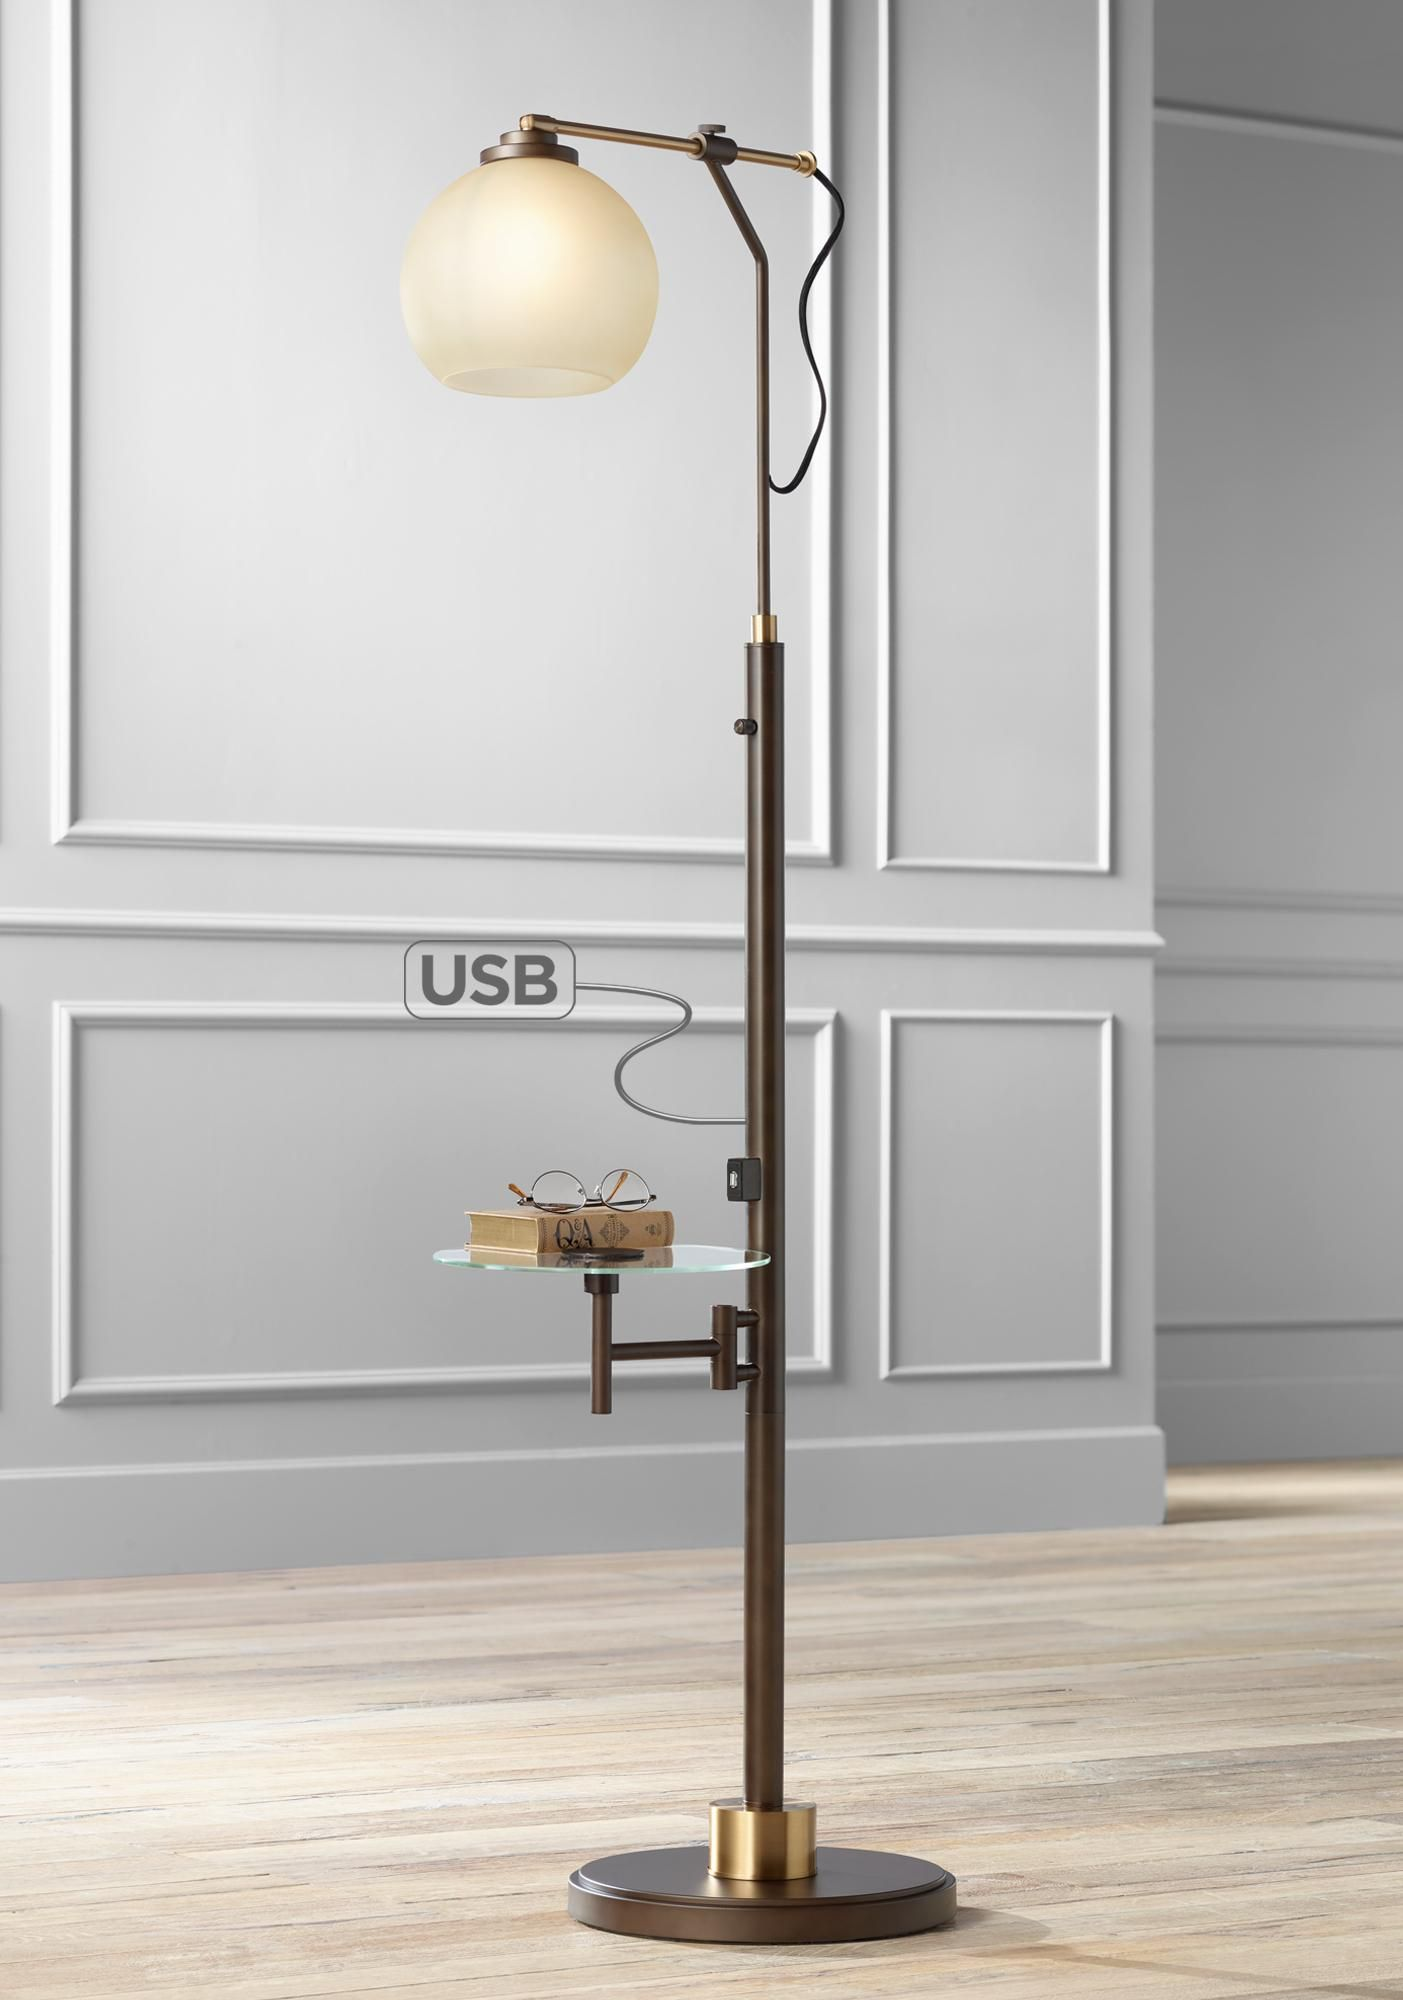 Floor Lamps Jobe Industrial Floor Lamp With Tray Table And Usb Port Table Lamps For Bedroom Industrial Floor Lamps Lamps Living Room